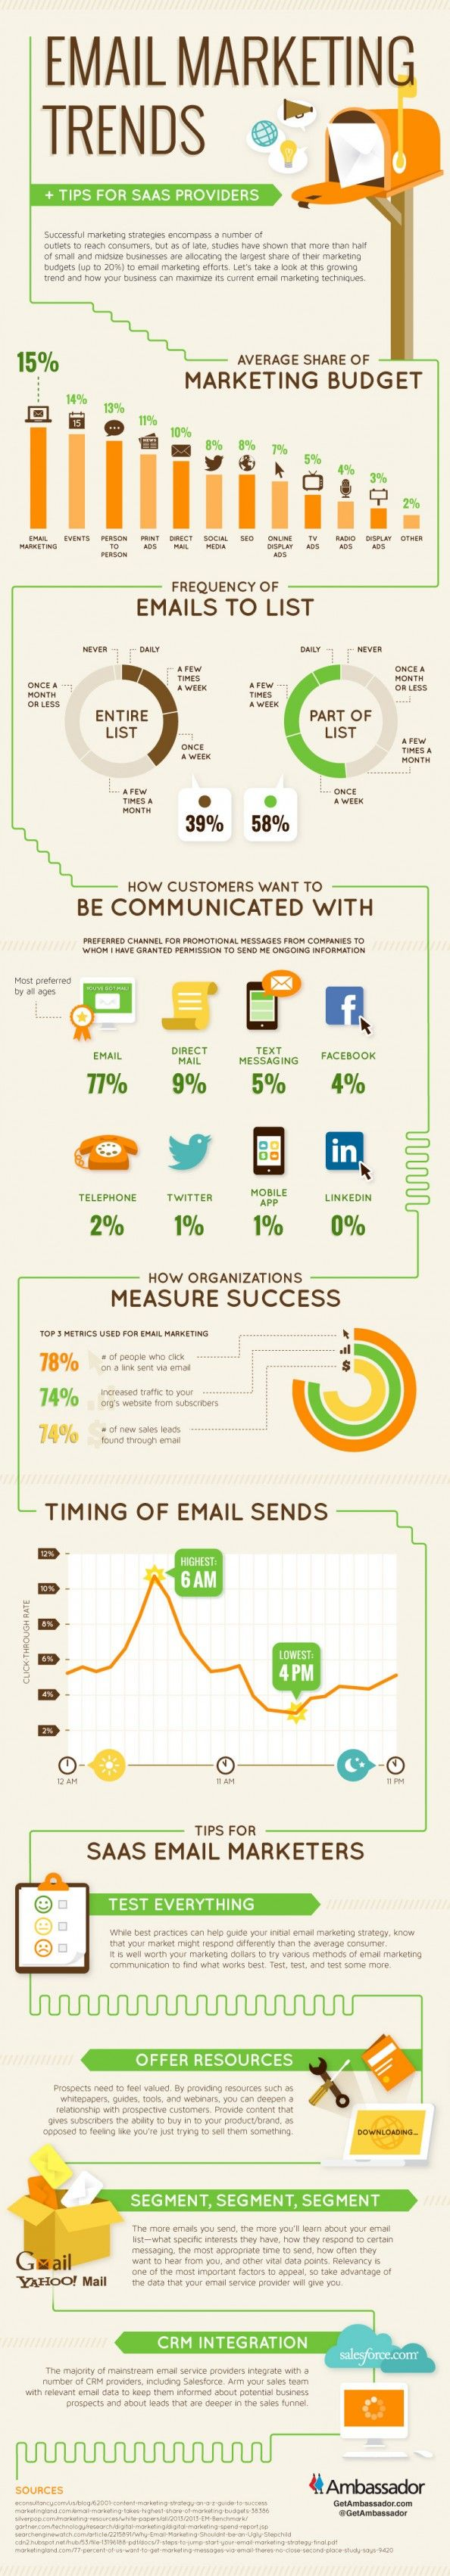 #EmailMarketing Trends